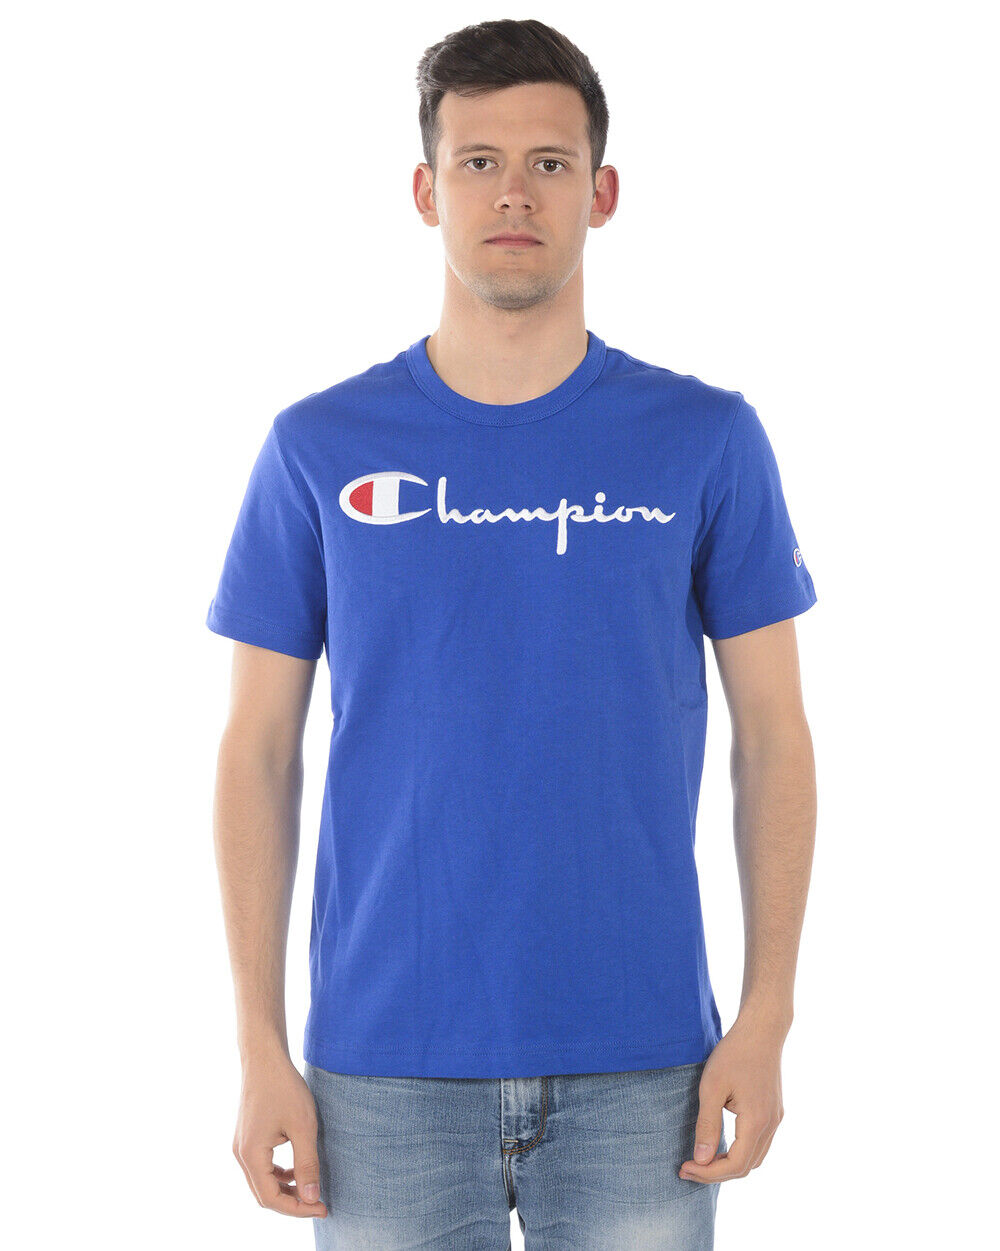 Champion T Shirt Sweatshirt Cotton Man Blau 210972 BS008 Sz. S PUT OFFER